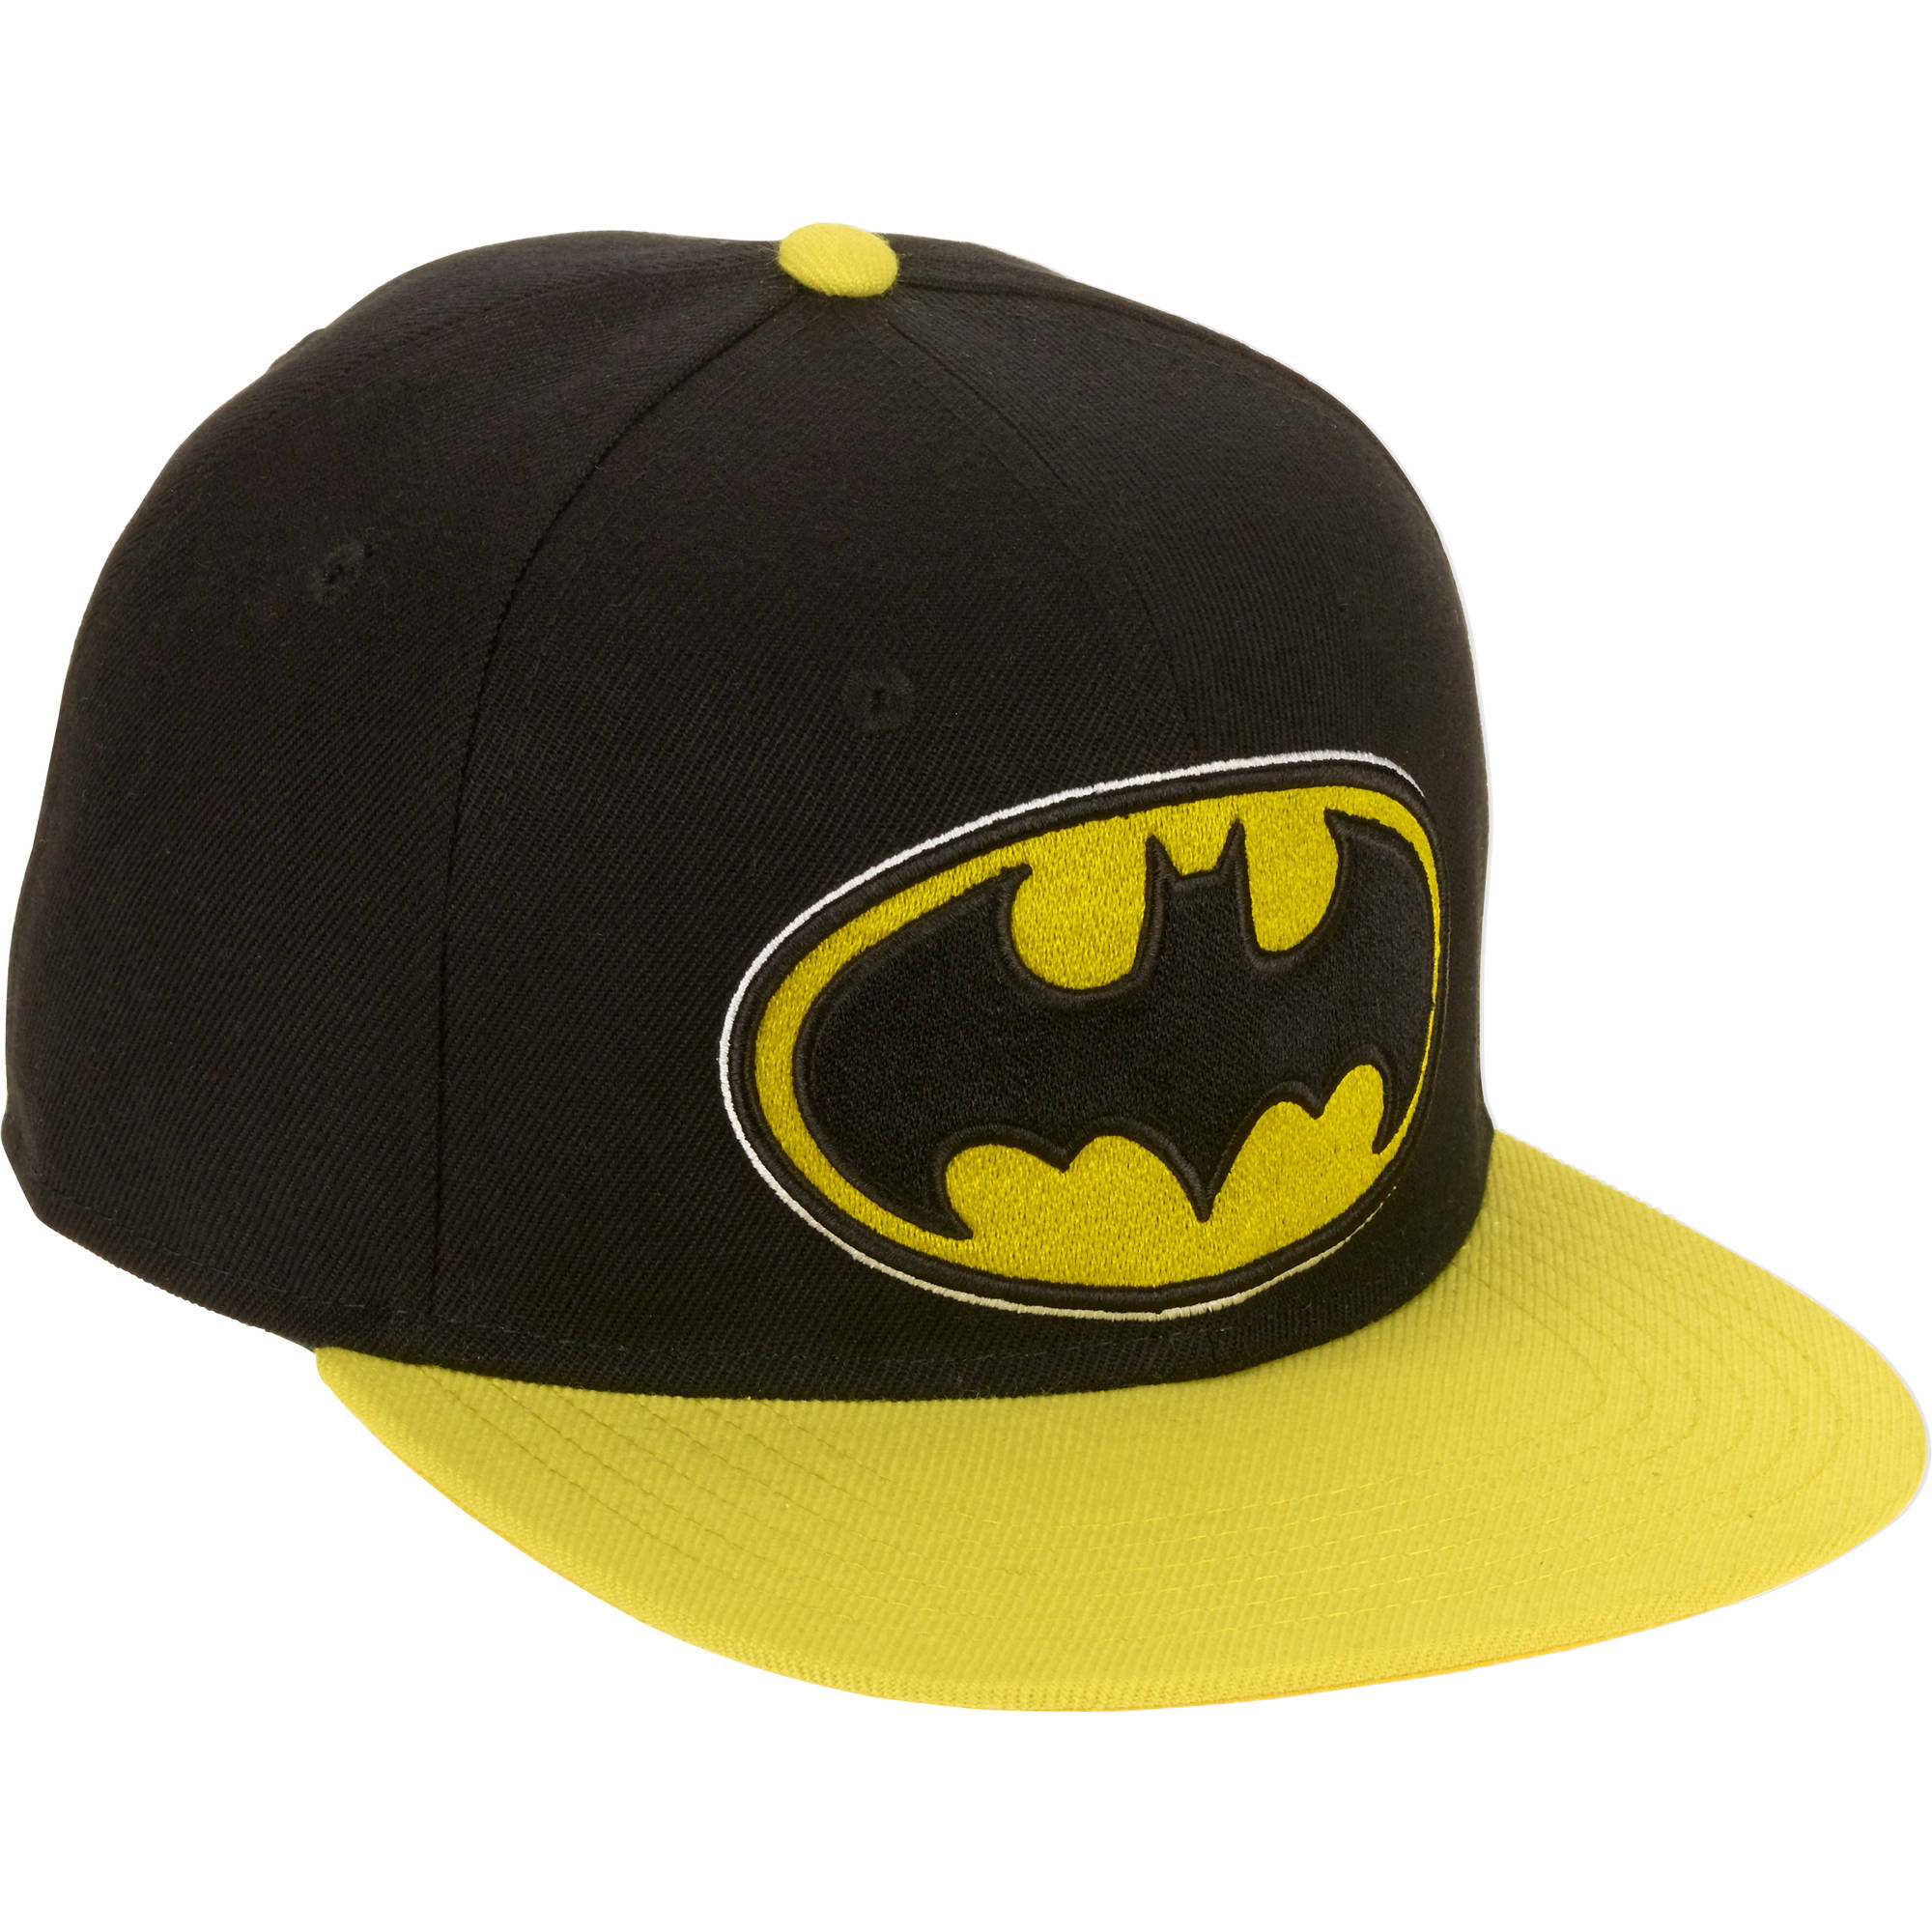 Men's Batman Snapback Flat Bill Hat